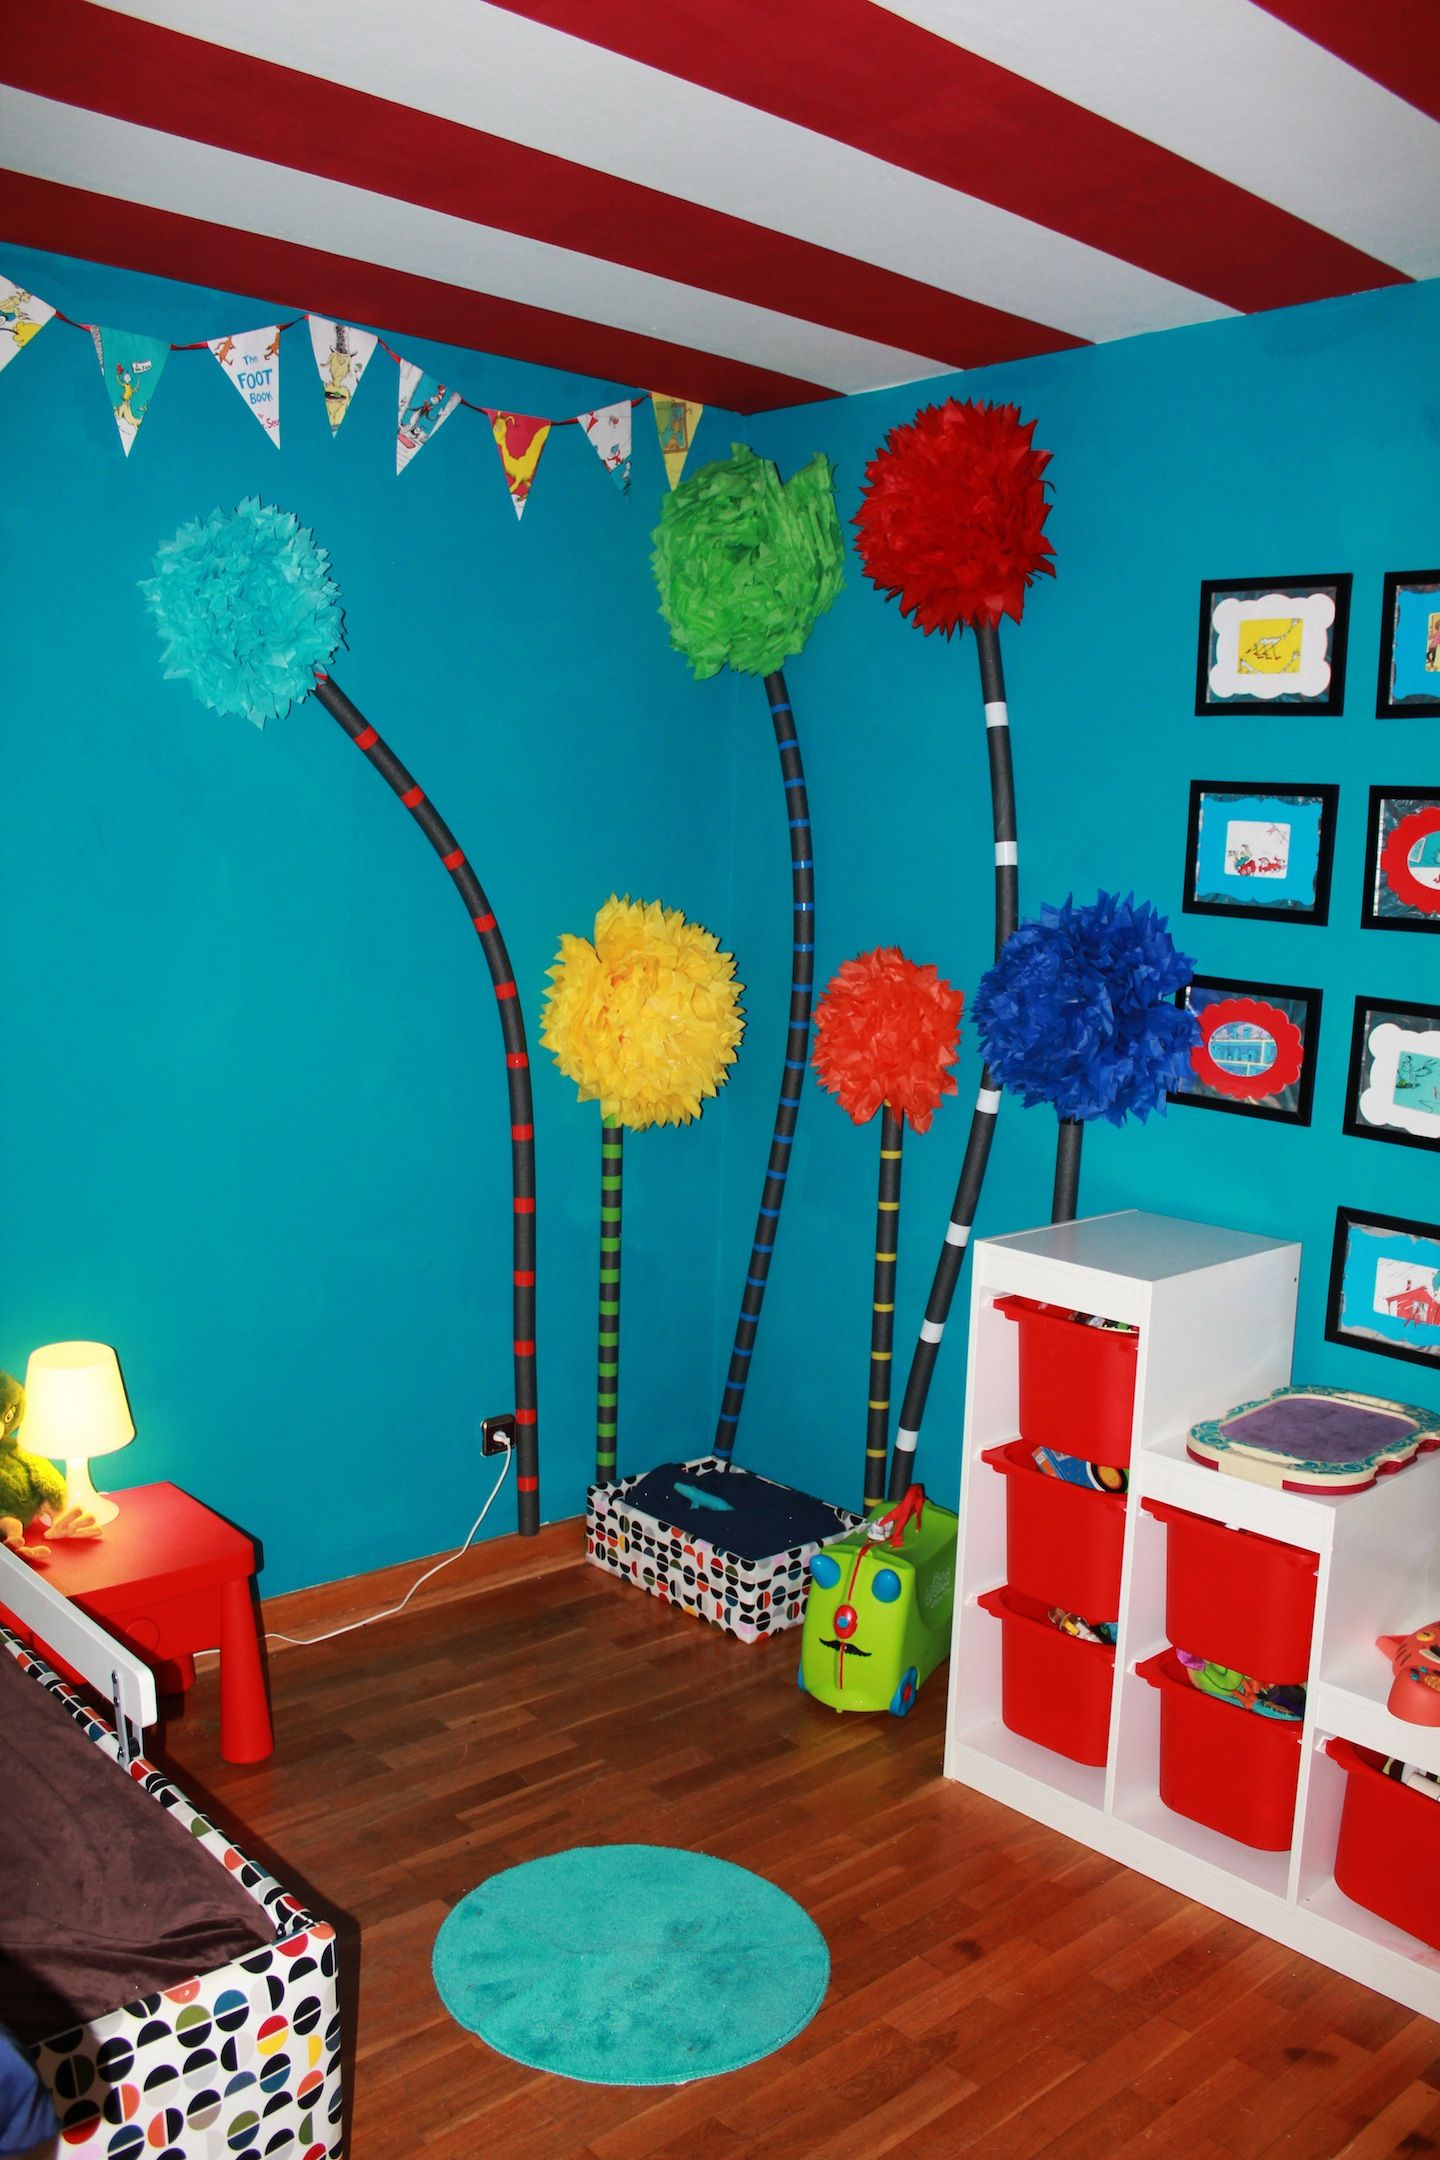 Love Camden S Room May Use It For Inspiration For Our Play Room Toddler And Baby Room Dr Seuss Nursery Baby Room Decor